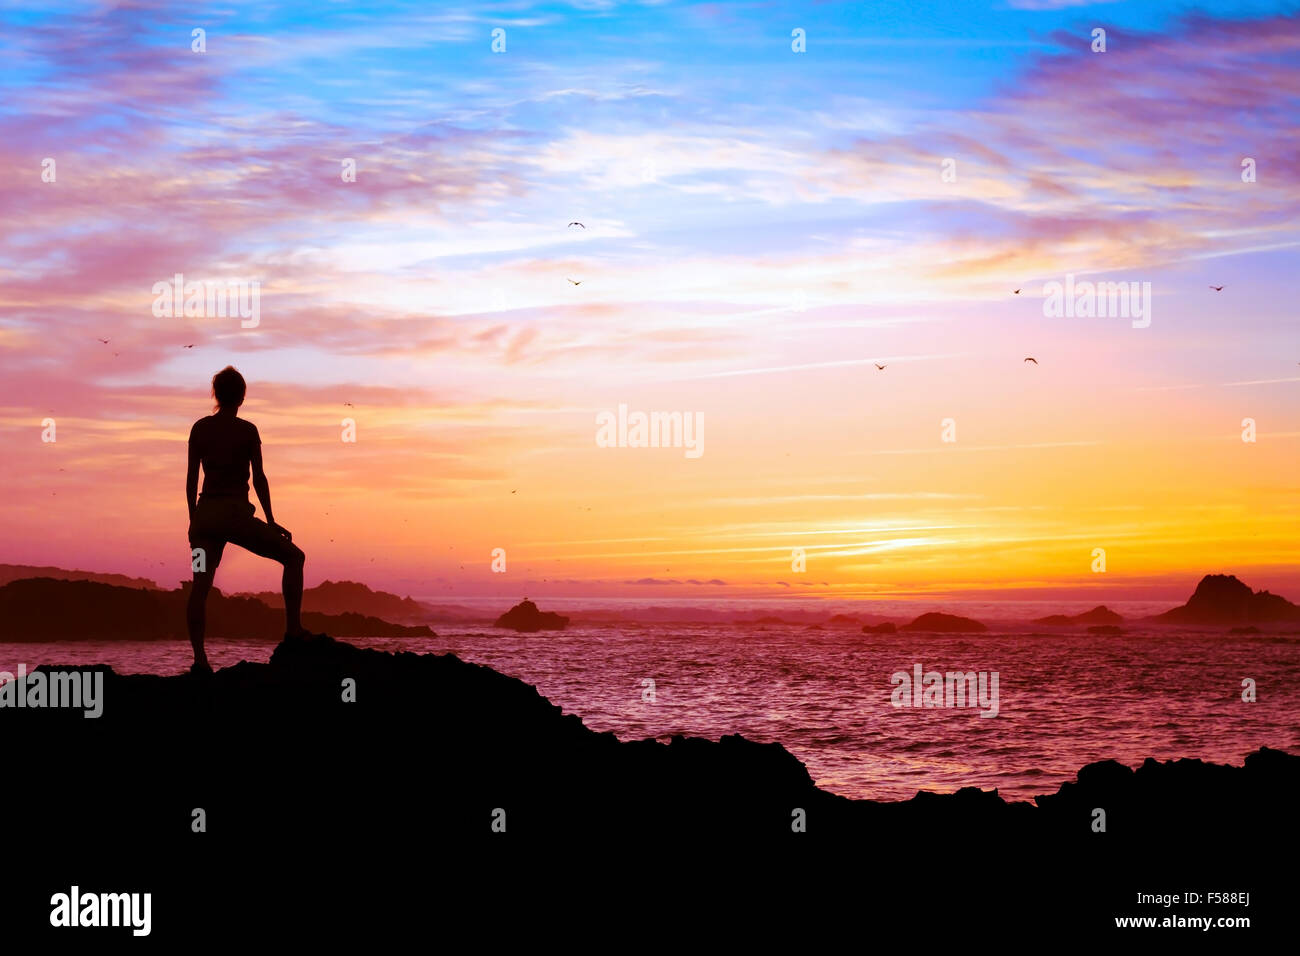 wellbeing concept, silhouette of person enjoying beautiful sunset with view of ocean - Stock Image